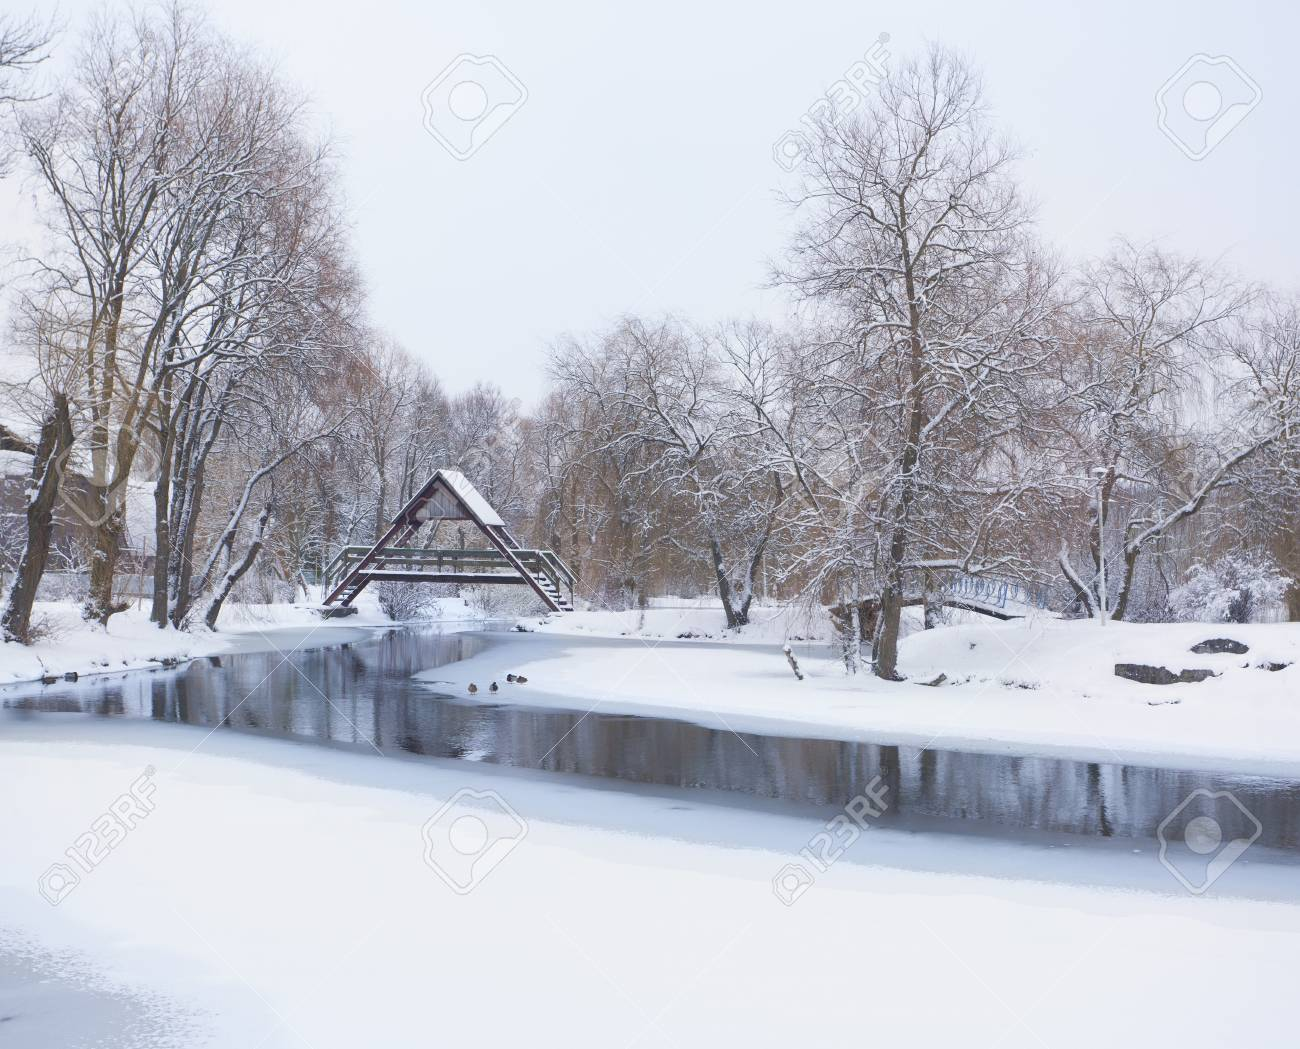 Snow-covered landscape in the city park Stock Photo - 16463964